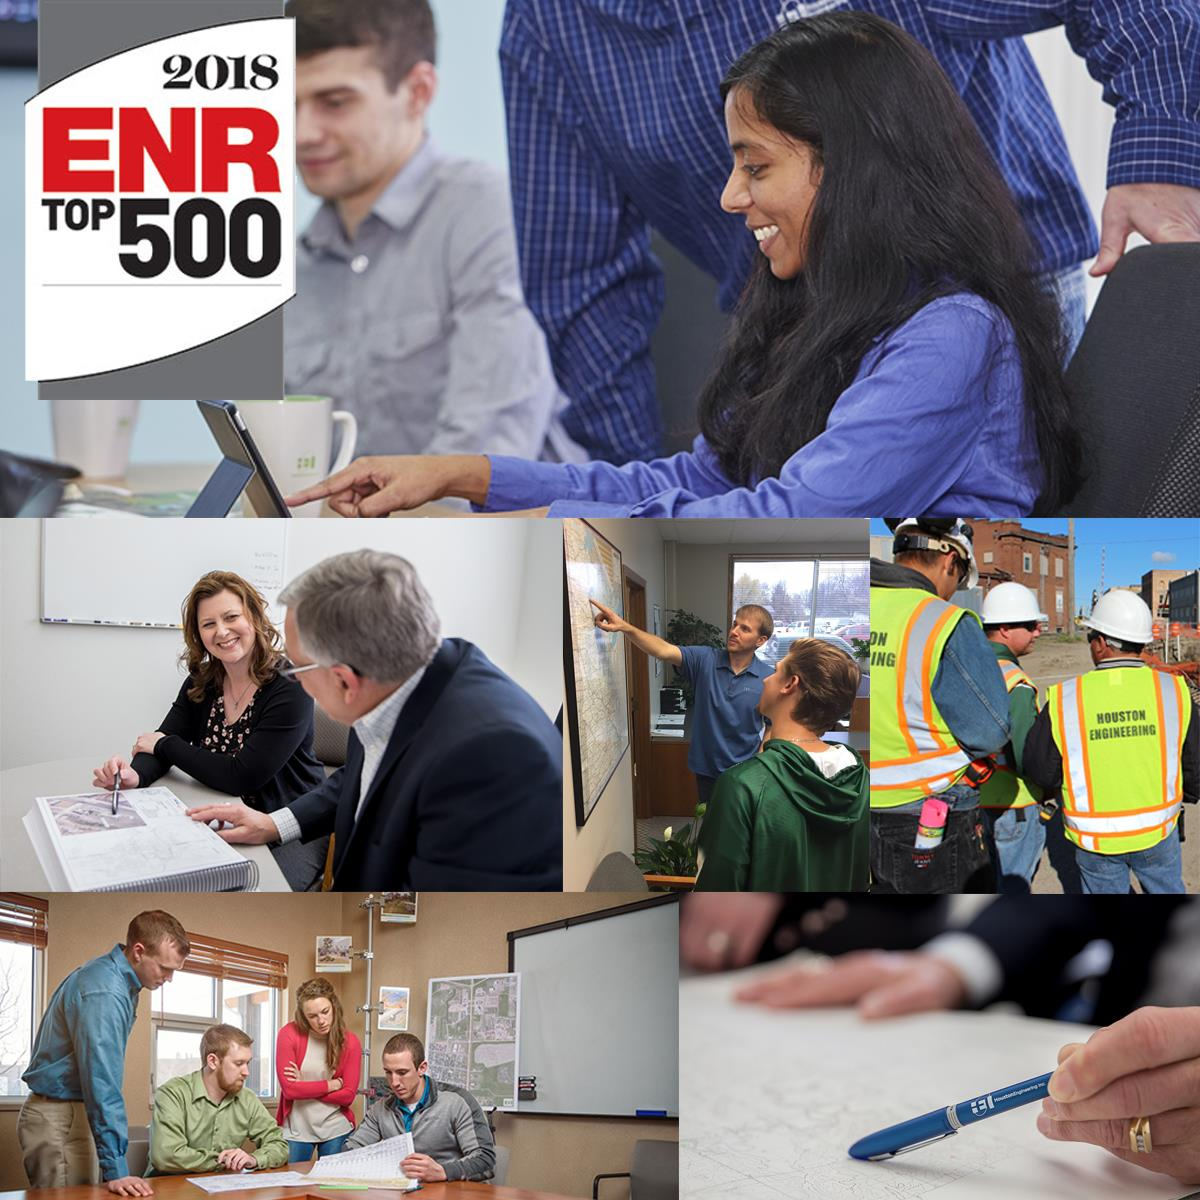 ENR_Top_500_website.jpg